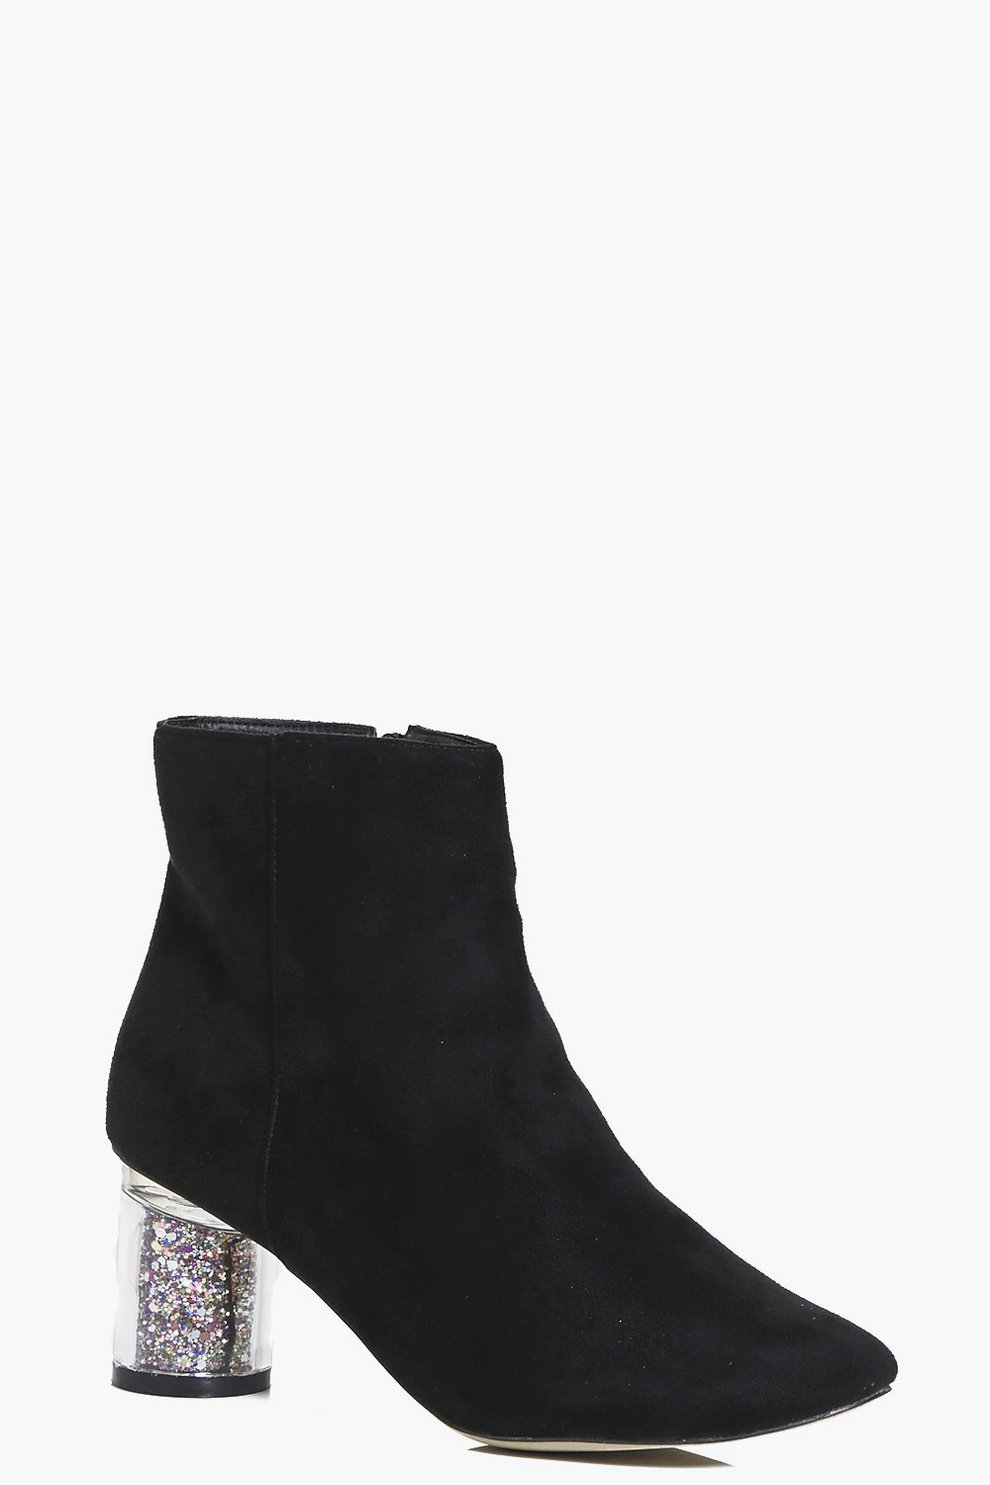 glitter heeled ankle boots Cheap Sale In China Discount Pick A Best The Cheapest Cheap Online Sast Sale Online 0xRO7H3FCD